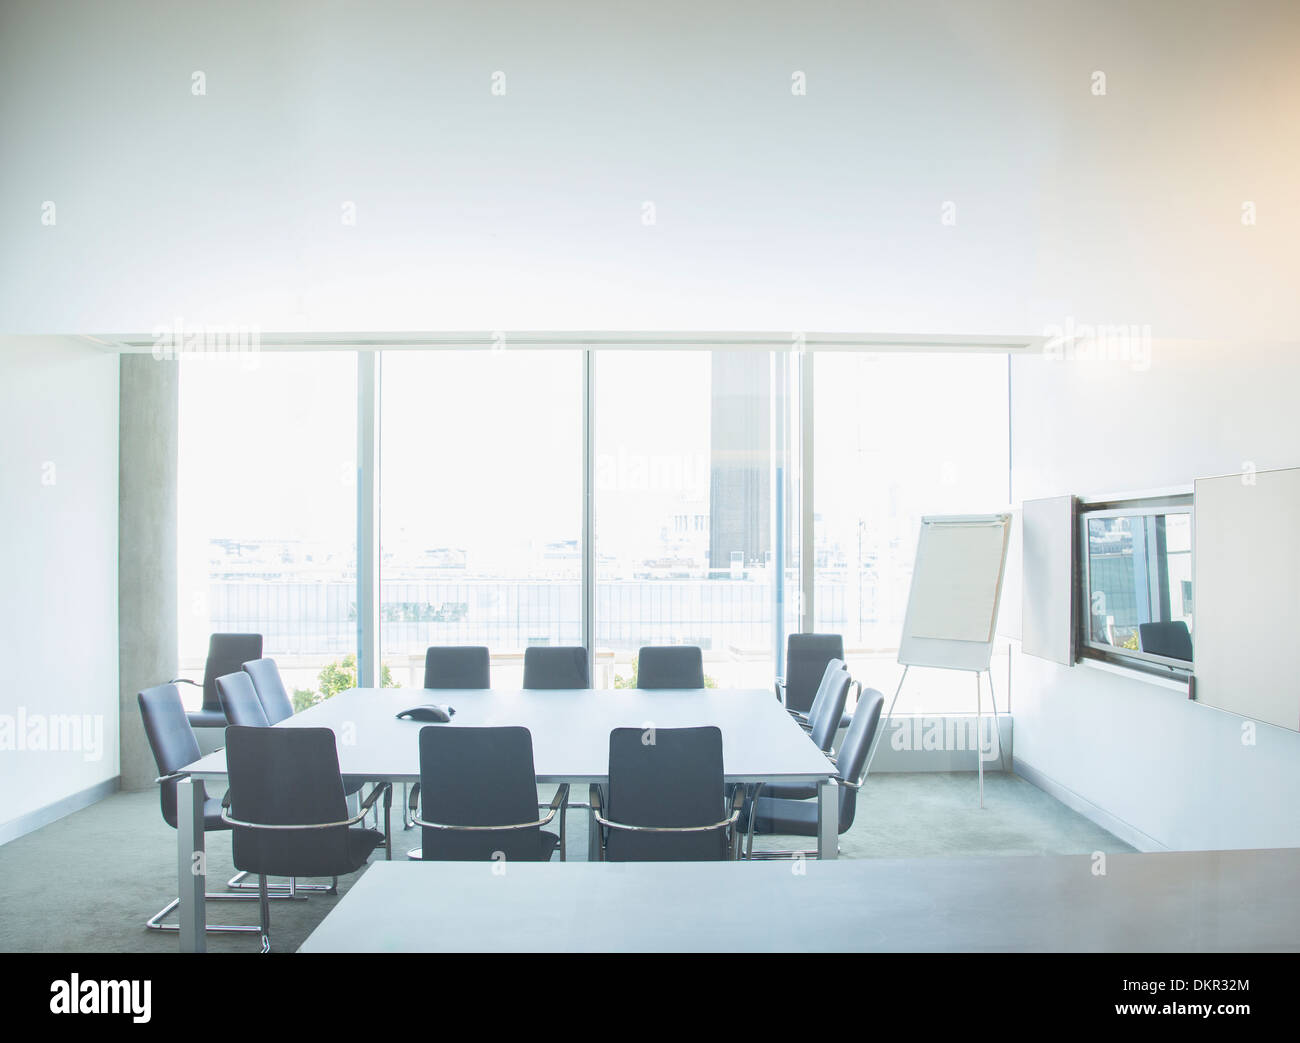 Empty meeting table in office - Stock Image